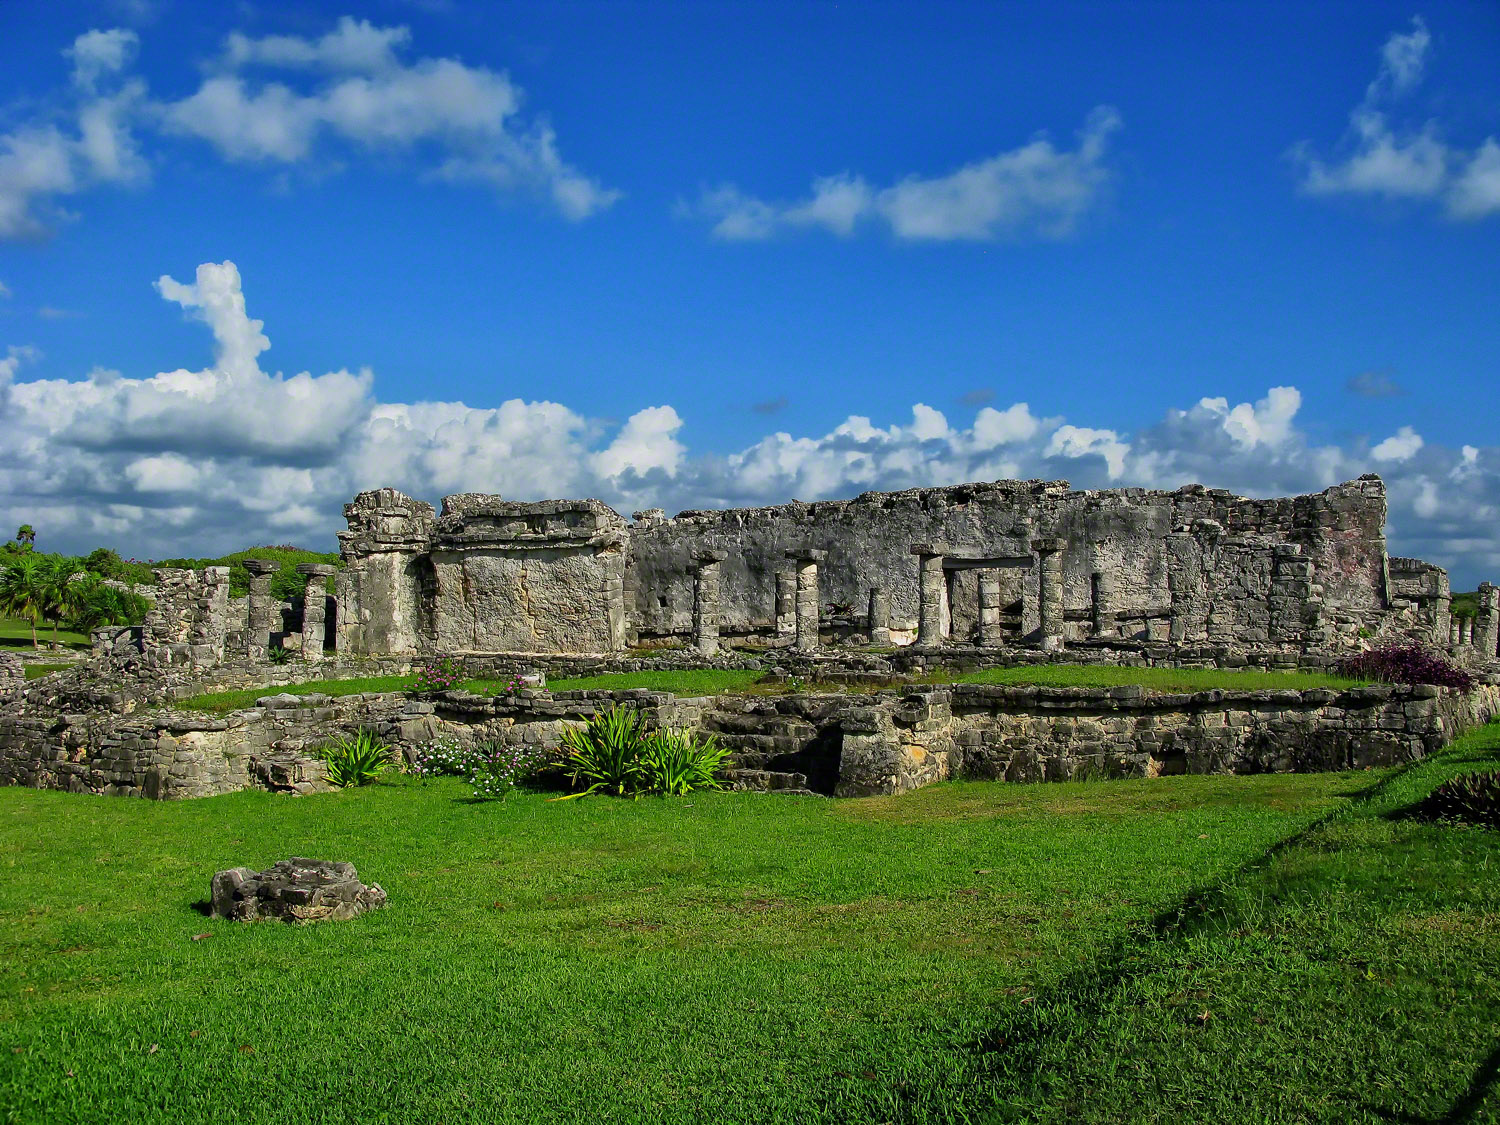 mexico, tulum, house of columns, the great palace, 1075, residence, quintana- roo,, photo